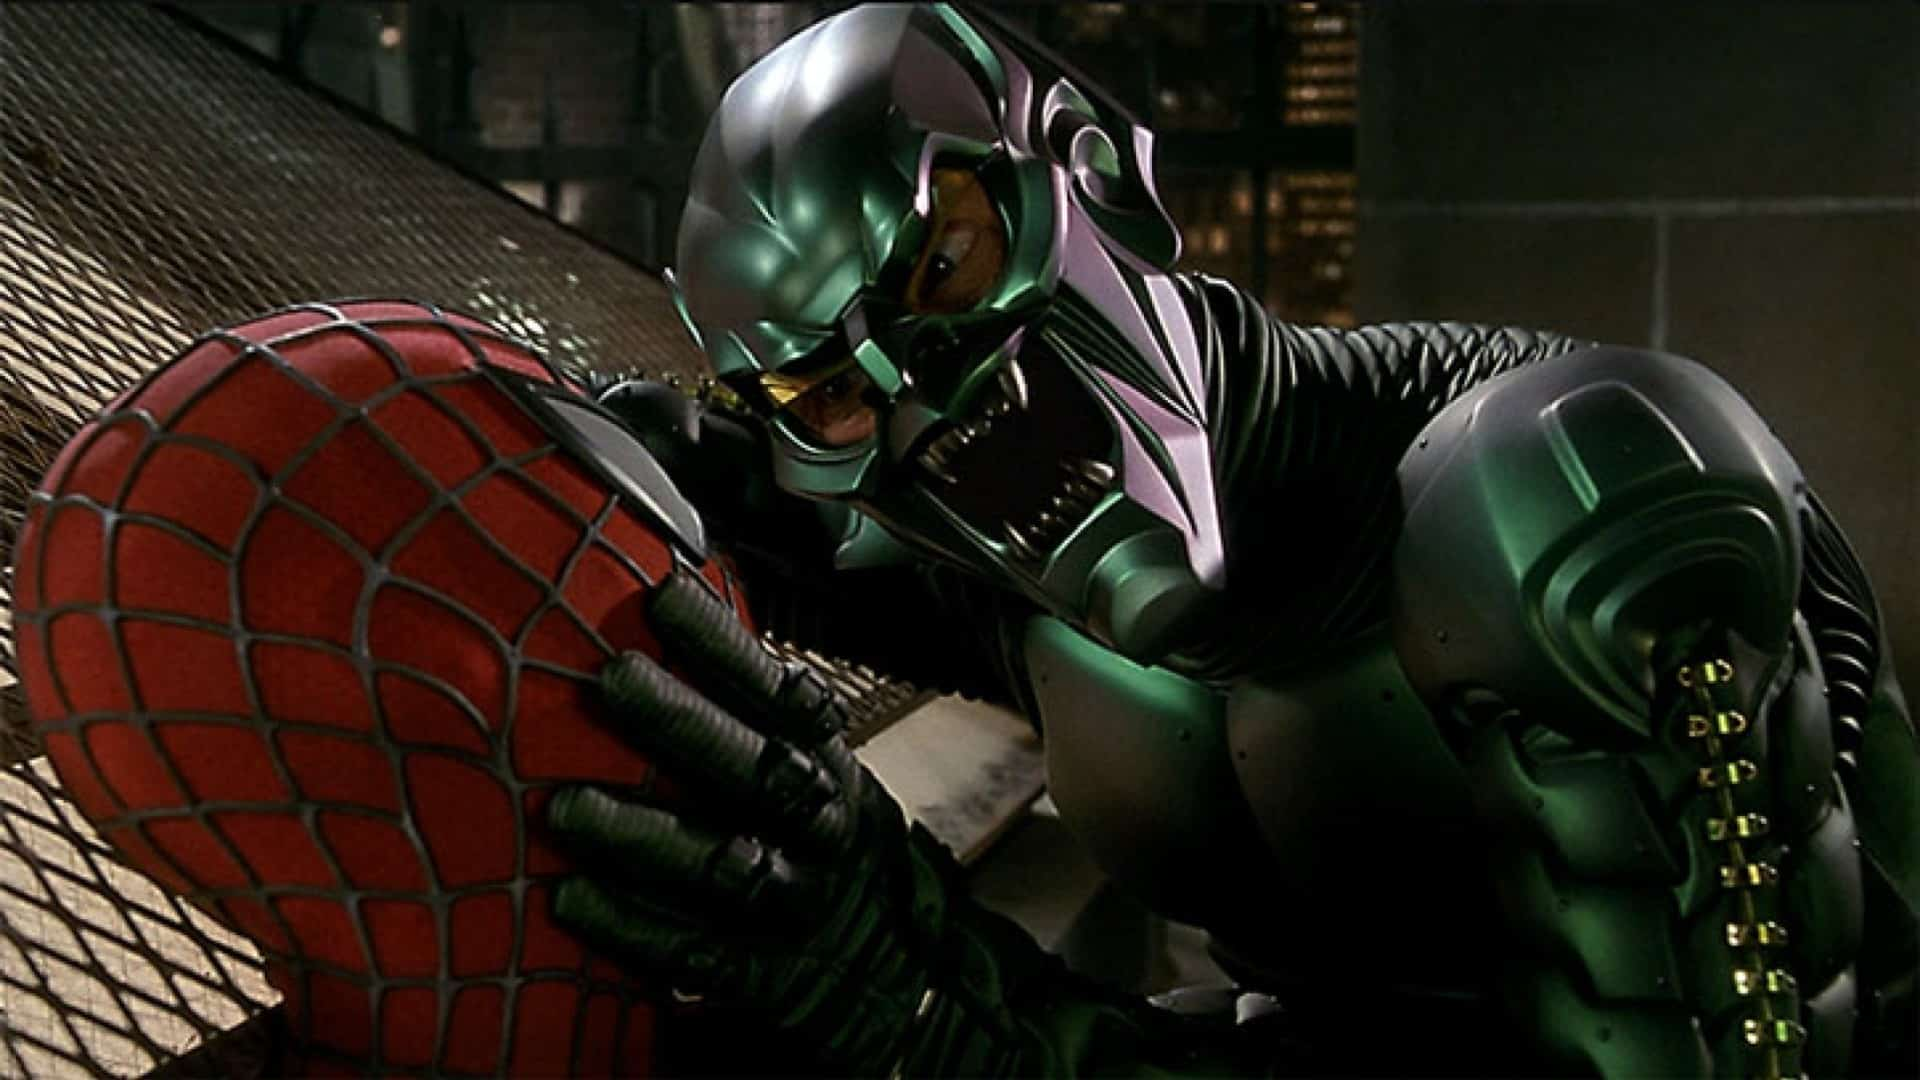 Spider-Man Green Goblin Sam Raimi Peter Parker how to be a good man, small personal stakes for a superhero